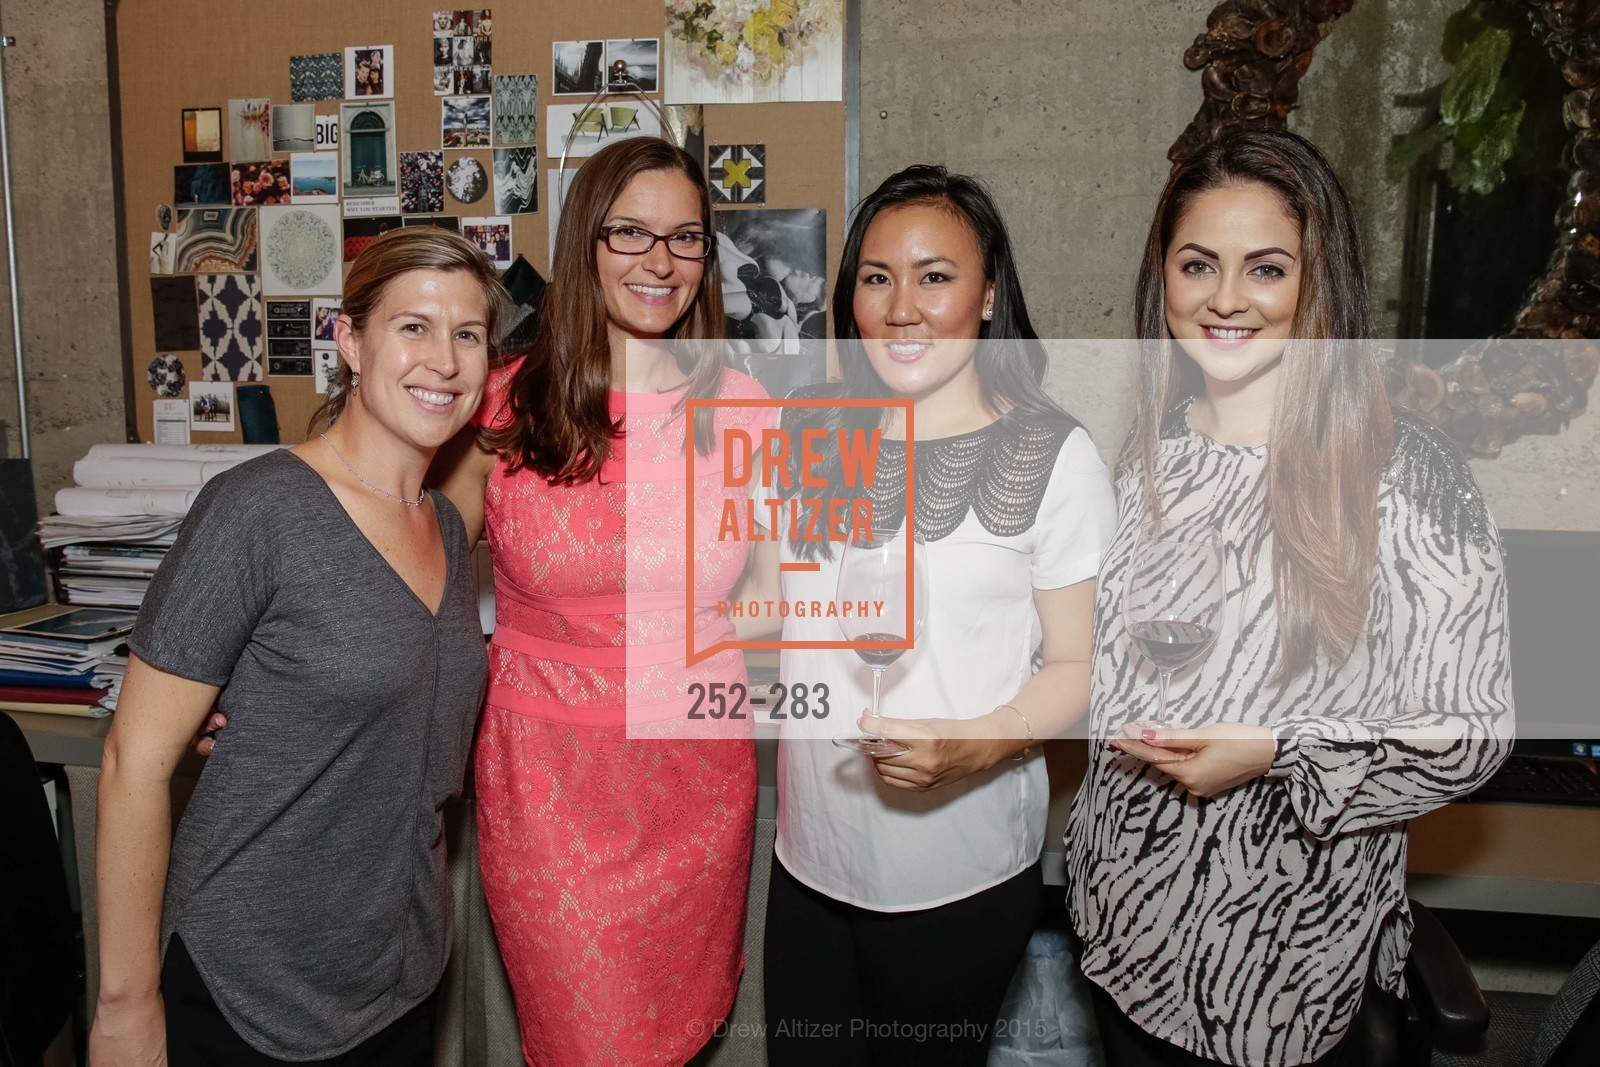 Anabel Atherton, Meredith Alexander, Cara Murayama, Nikita Stone, Jay Jeffers Host Will Harlan, Jay Jeffers CAVALIER. 1035 Post Street, San Francisco 94109, September 10th, 2015,Drew Altizer, Drew Altizer Photography, full-service agency, private events, San Francisco photographer, photographer california